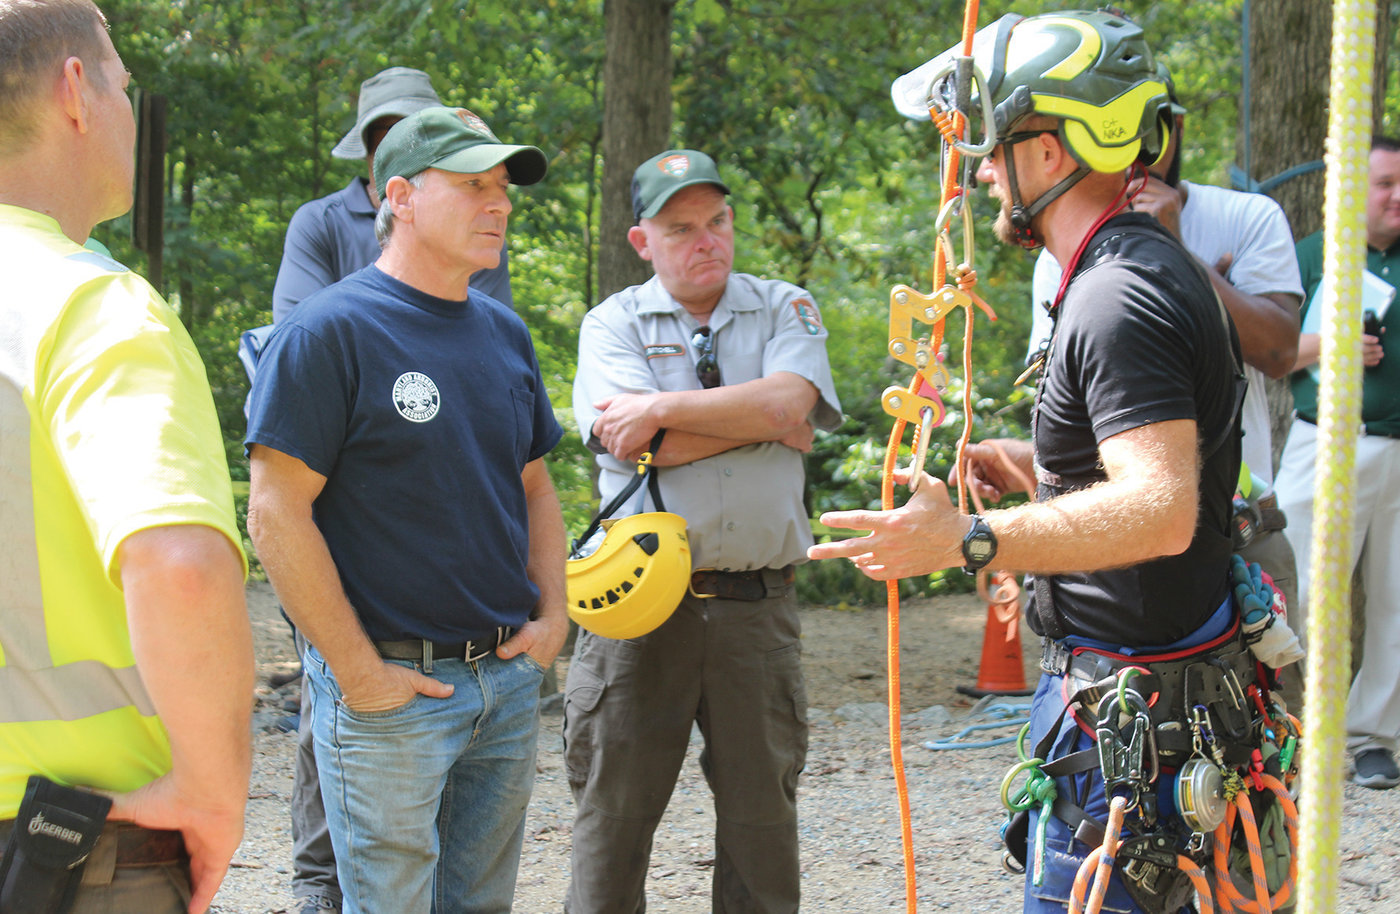 Brad Hughes, CTSP, talks about the skills and endurance needed to climb in traditional ways versus using crane assistance during the second TCIA-organized crane training day for OSHA and National Park Service personnel, this one in Maryland in September 2019.